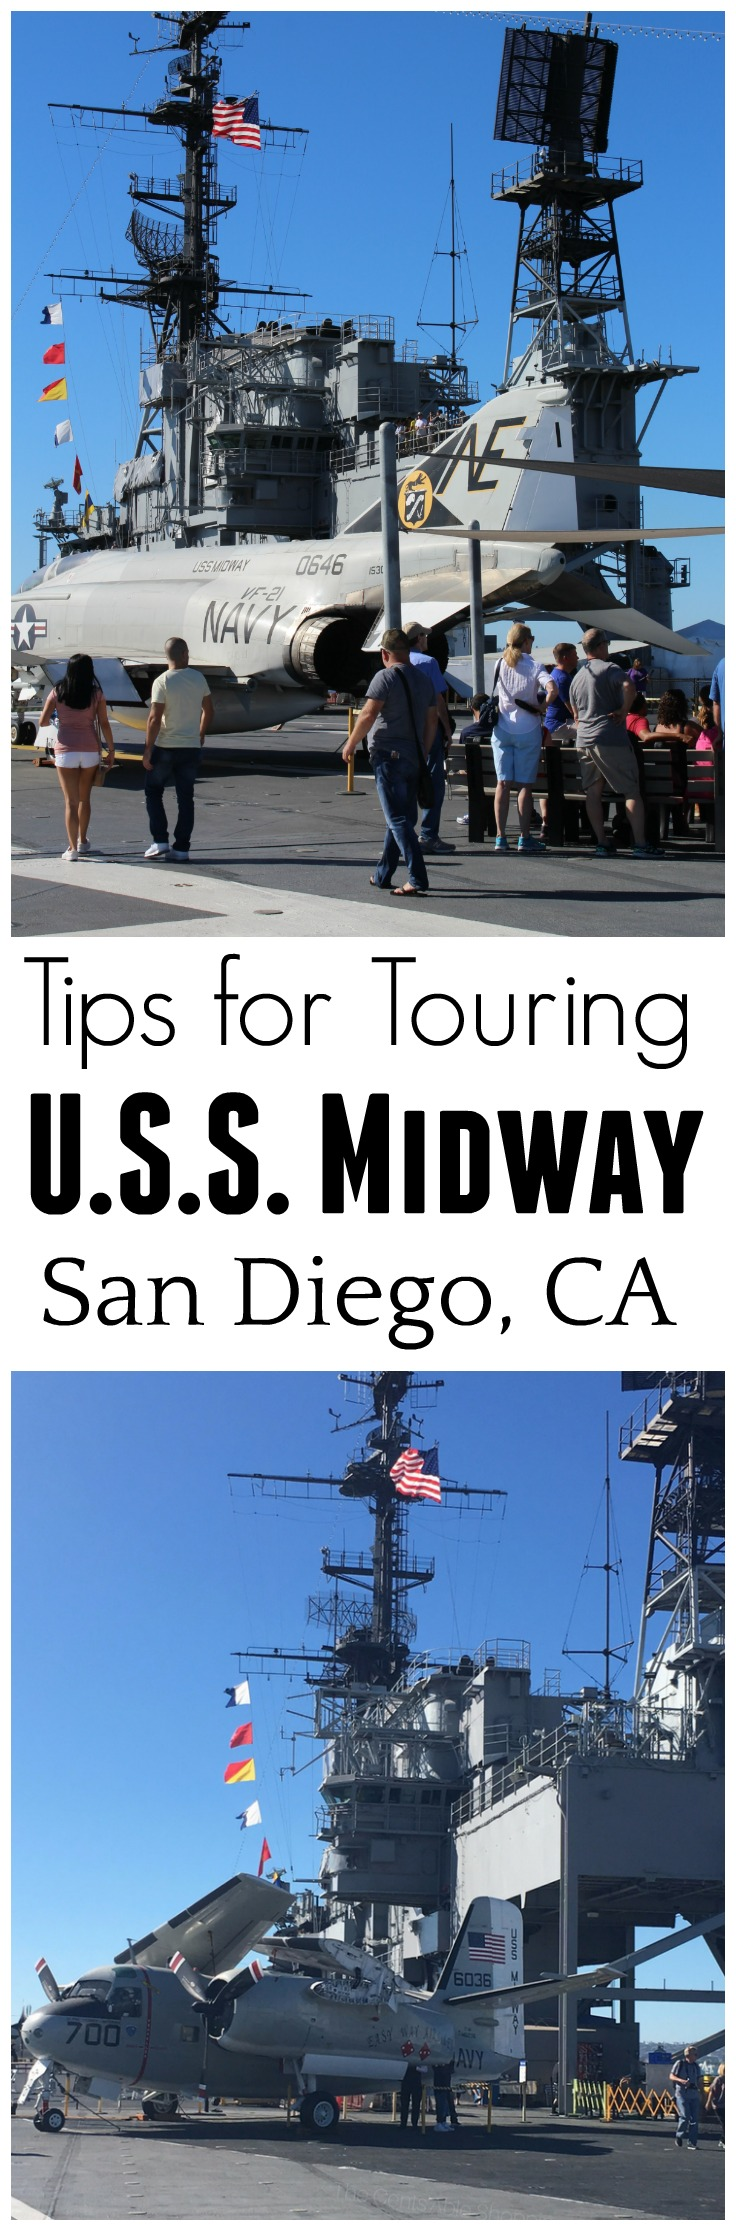 The USS Midway was America's longest-serving aircraft carrier of the 20th century, from 1945 to 1992. It is now docked in San Diego, California and is a once-in-a-lifetime experiences. #sandiego #navy #travel #museum